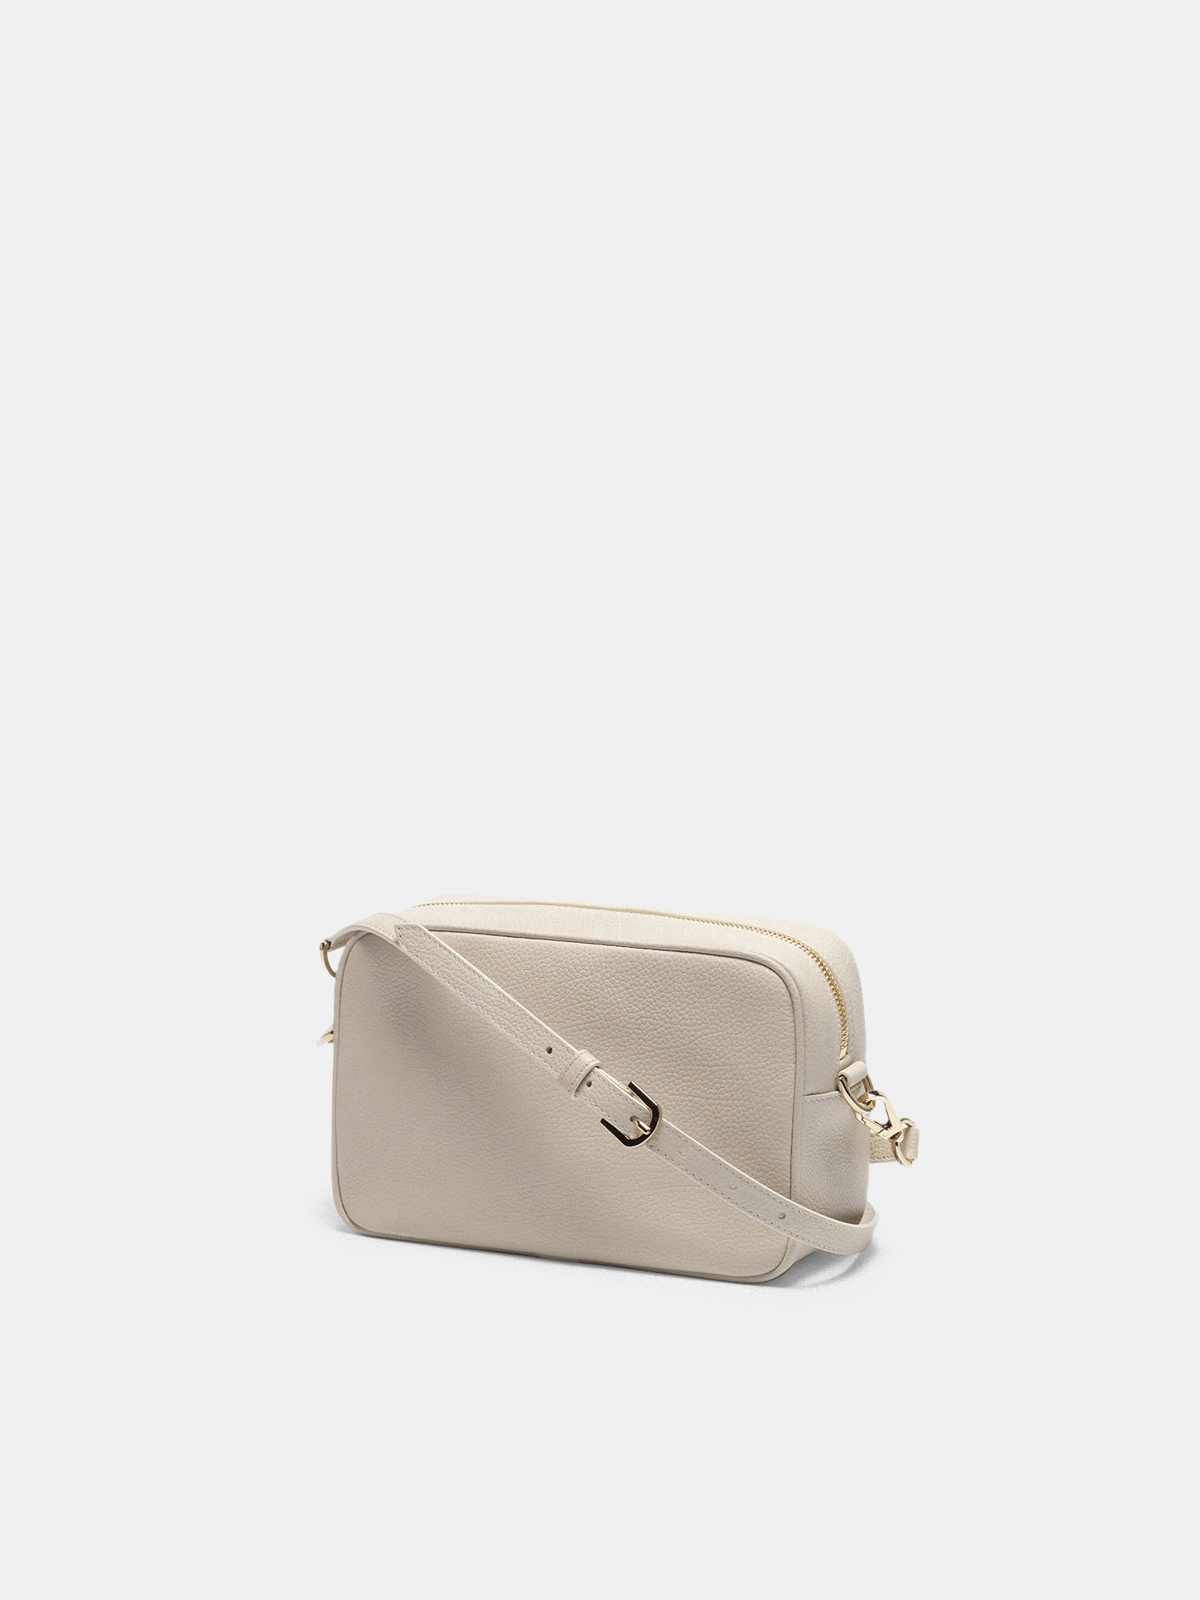 Golden Goose - Star Bag with shoulder strap made of pebbled leather in